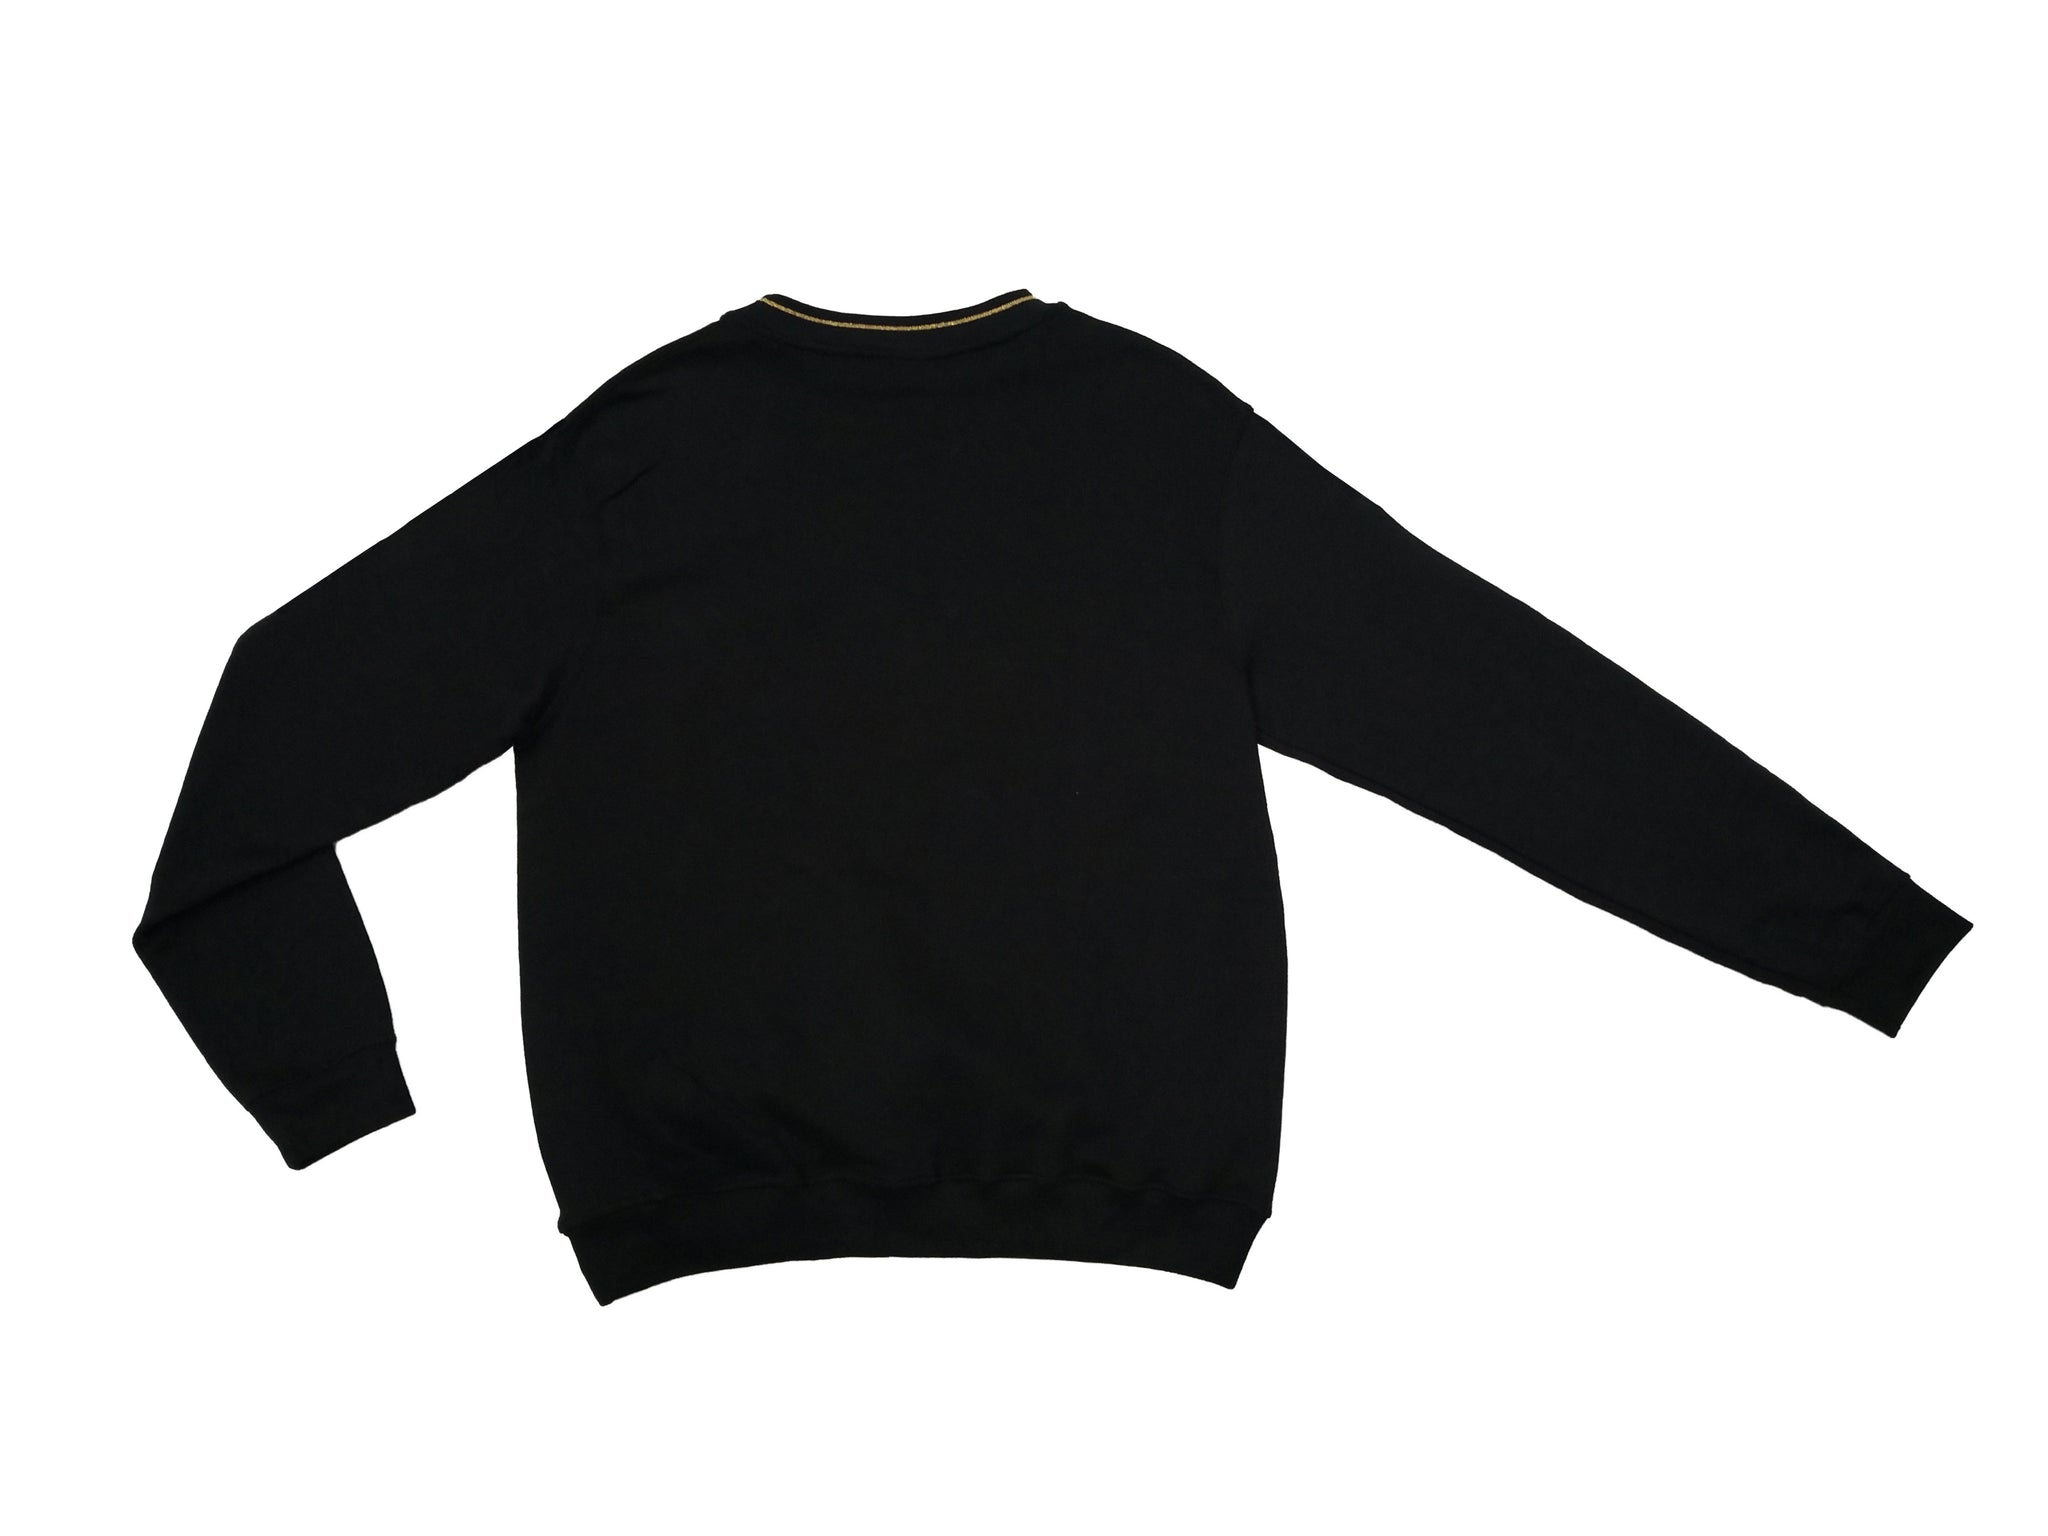 GENTLEGANG SWEATSHIRT